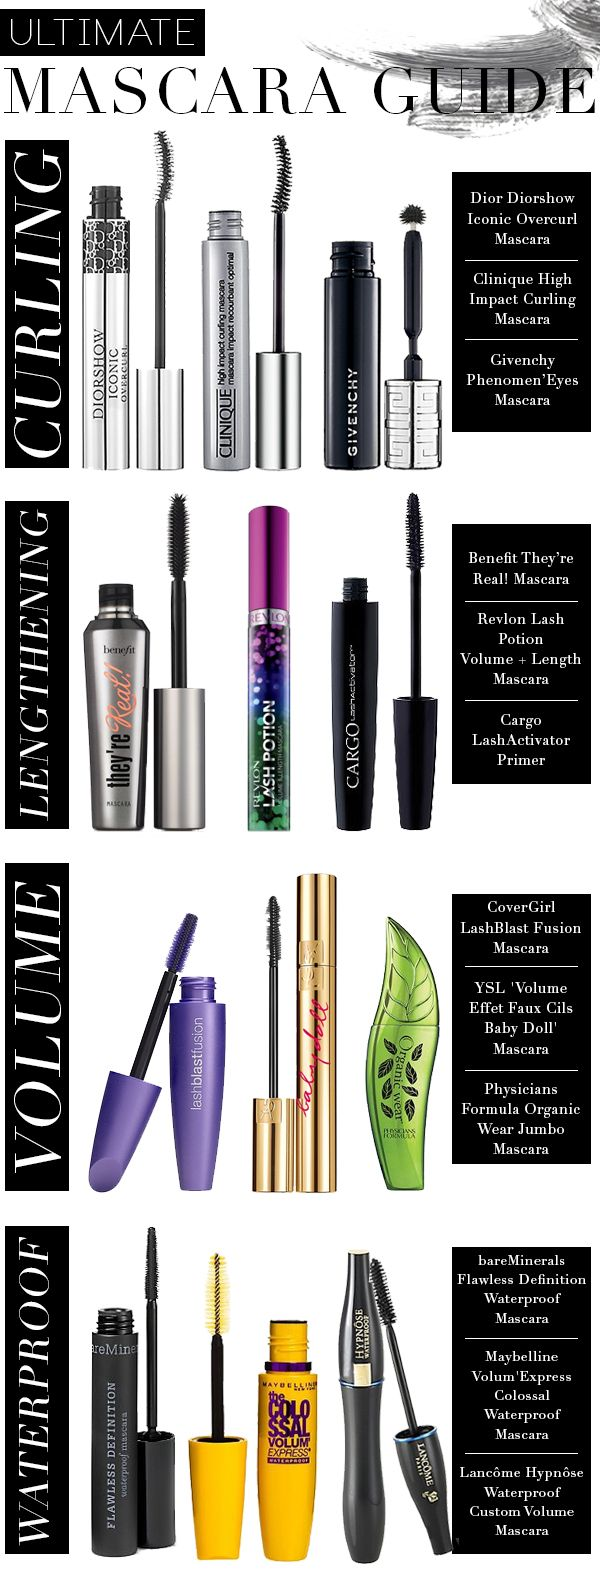 Our Ultimate Mascara Guide